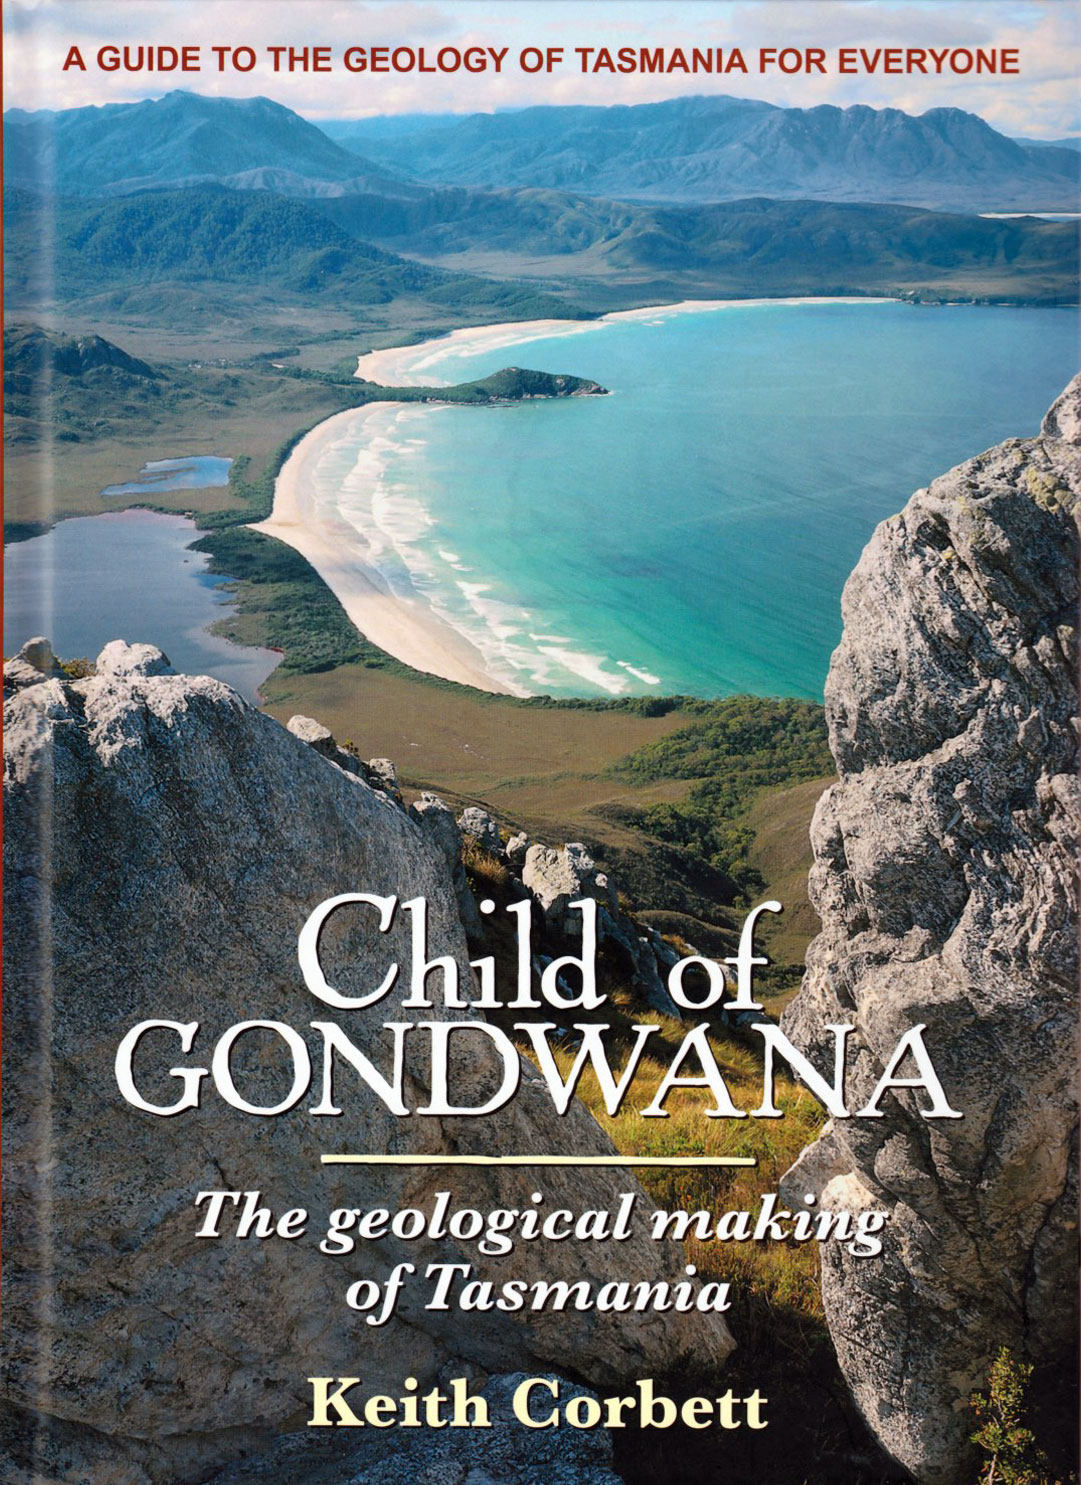 Child of Gondwana